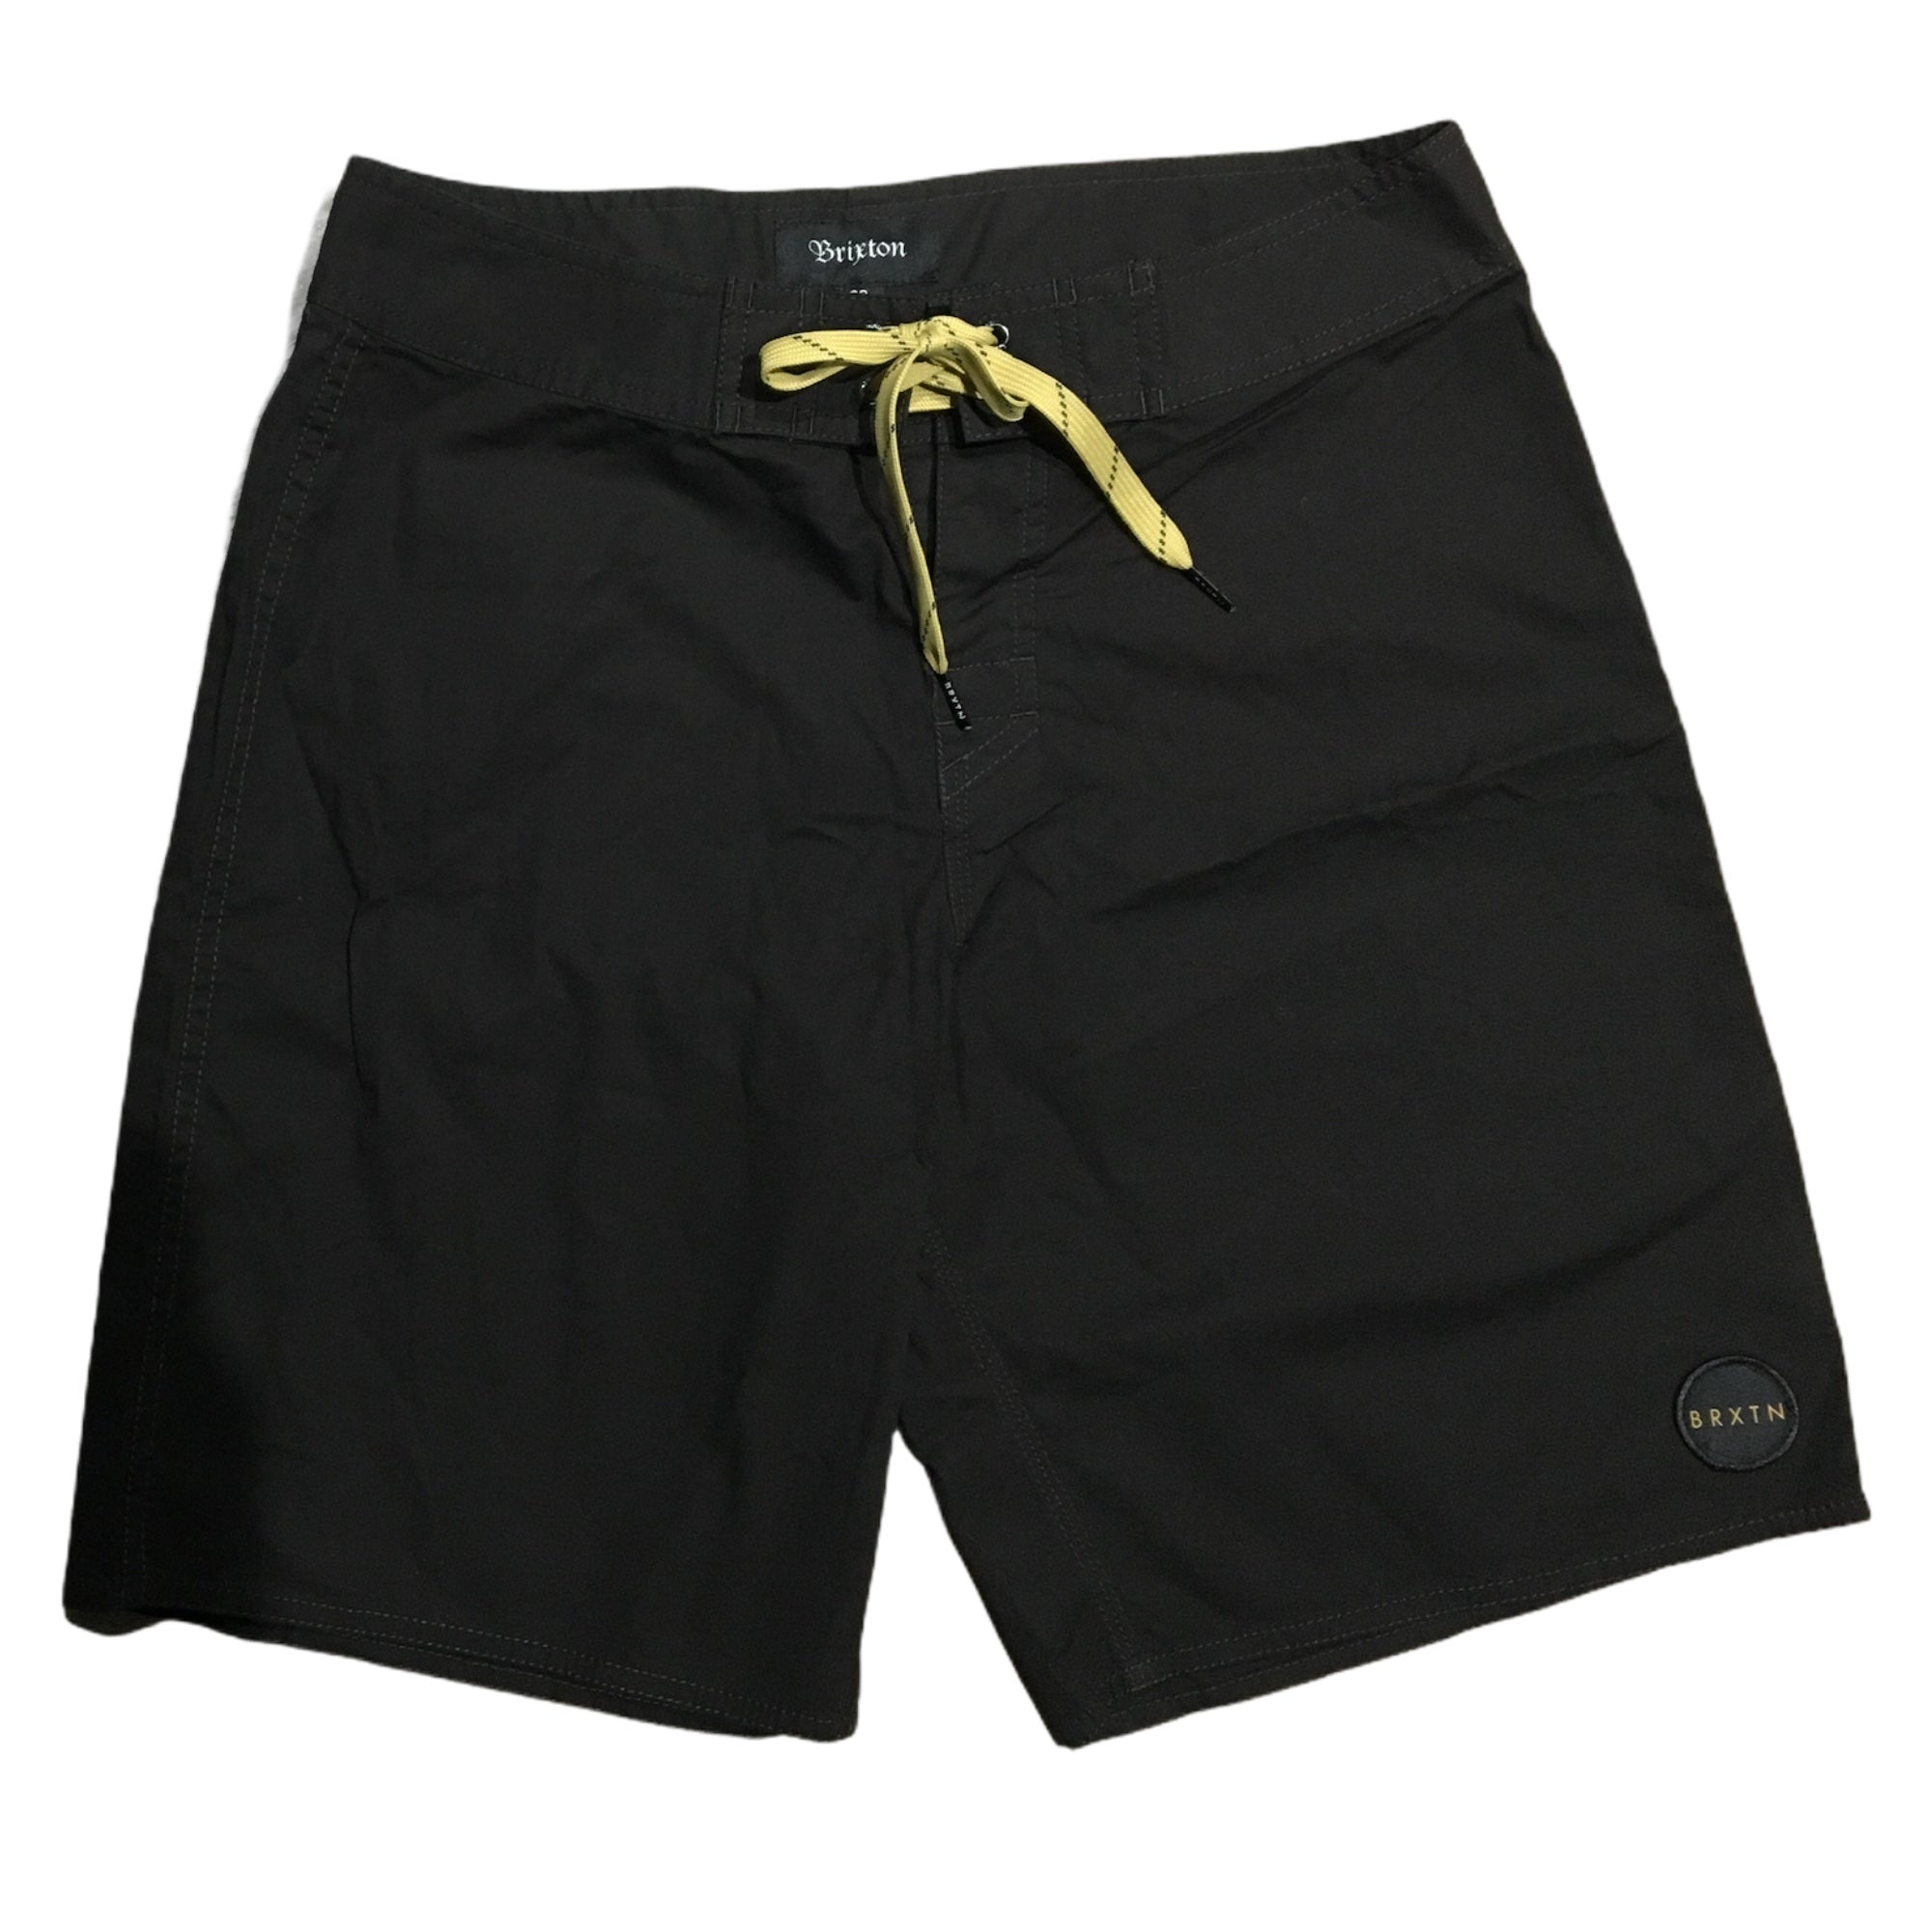 Brixton Meyer Swim Trunk Black